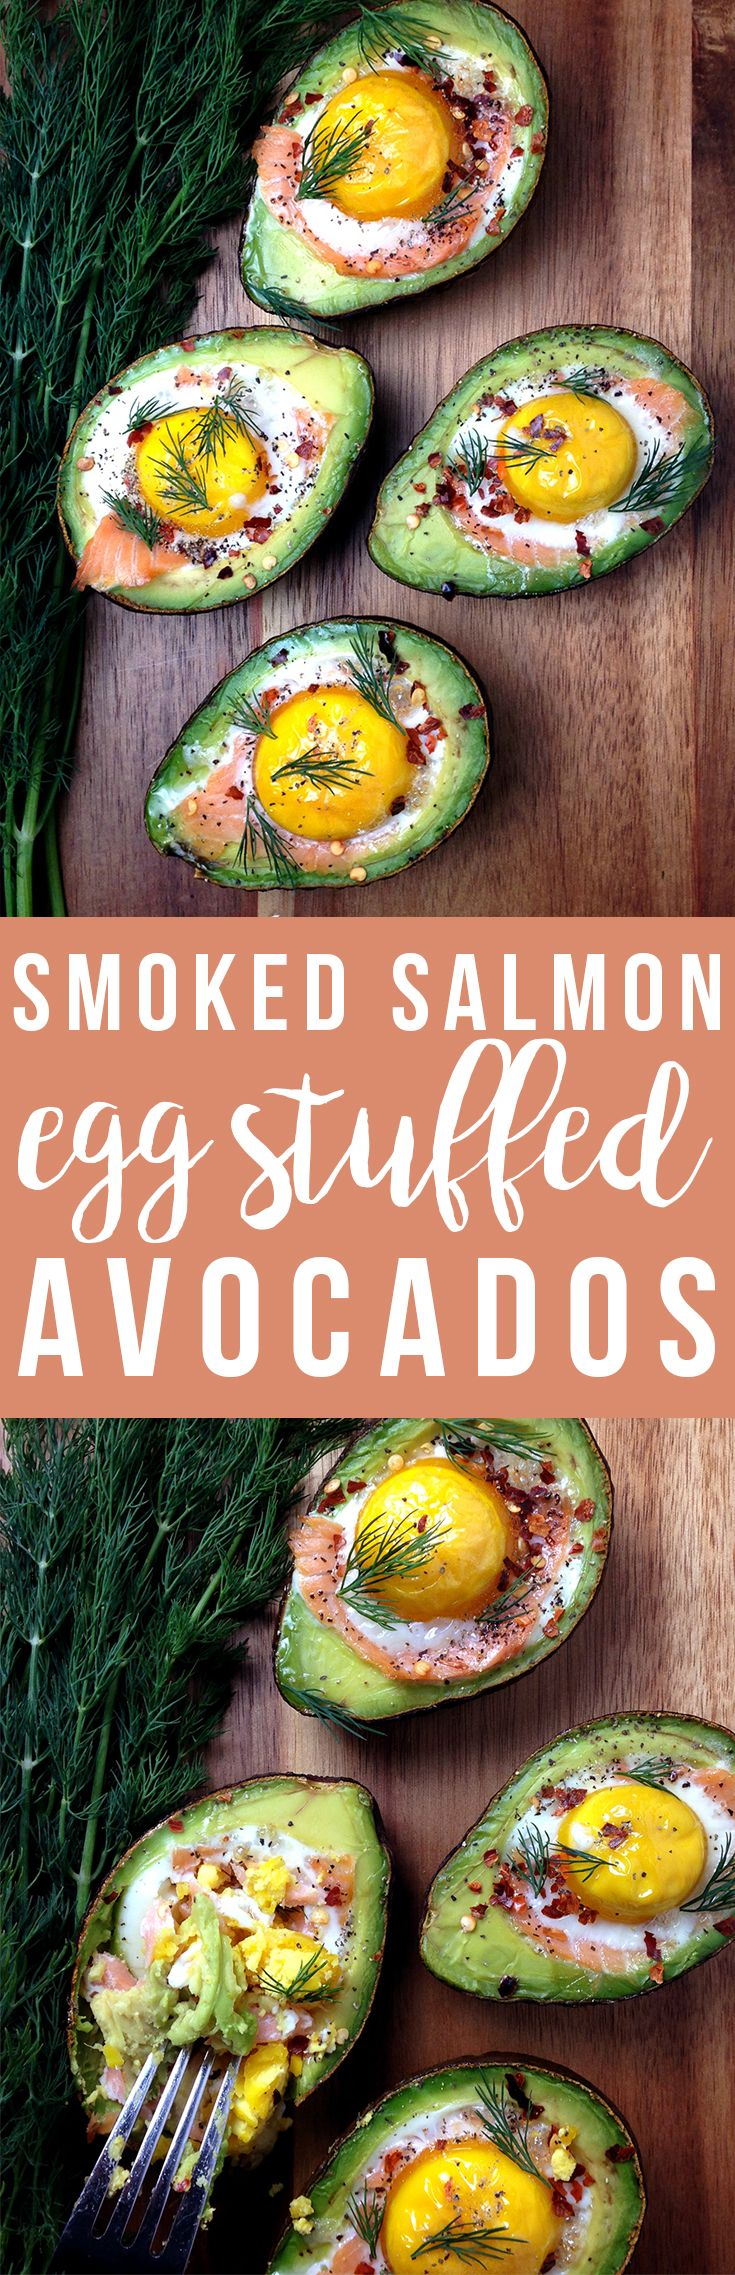 Smoked salmon and eggs stuff these avocados to bursting with healthy omega-3s! via @freshplanetflvr